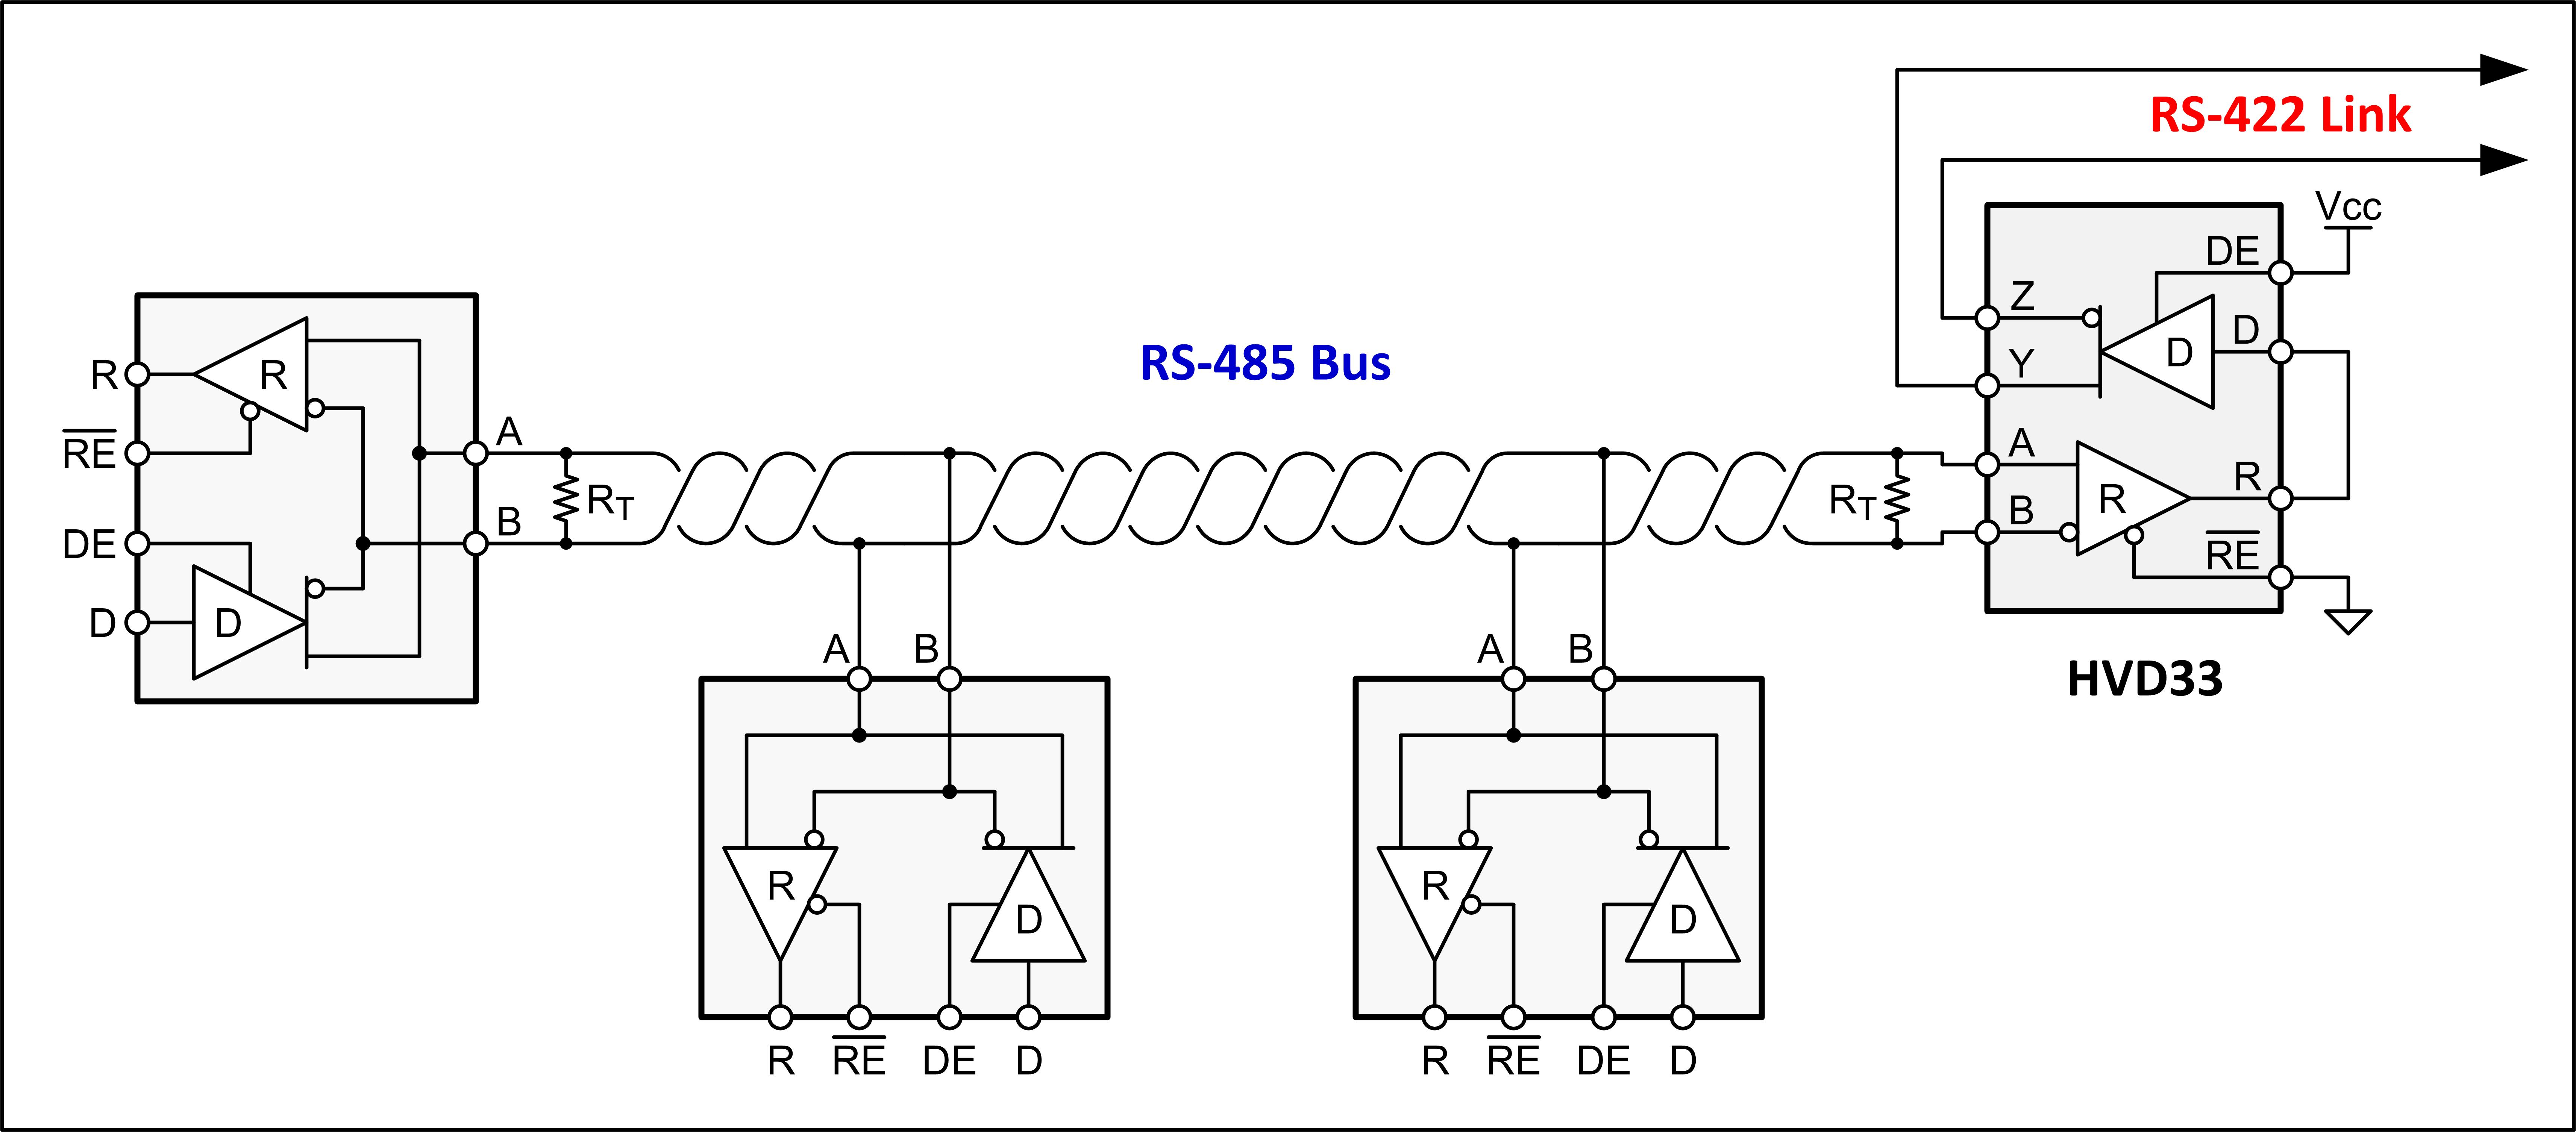 5554.RS485_2D00_422 Bridge rs485 wiring examples rs485 wiring example \u2022 wiring diagrams Basic Electrical Wiring Diagrams at reclaimingppi.co